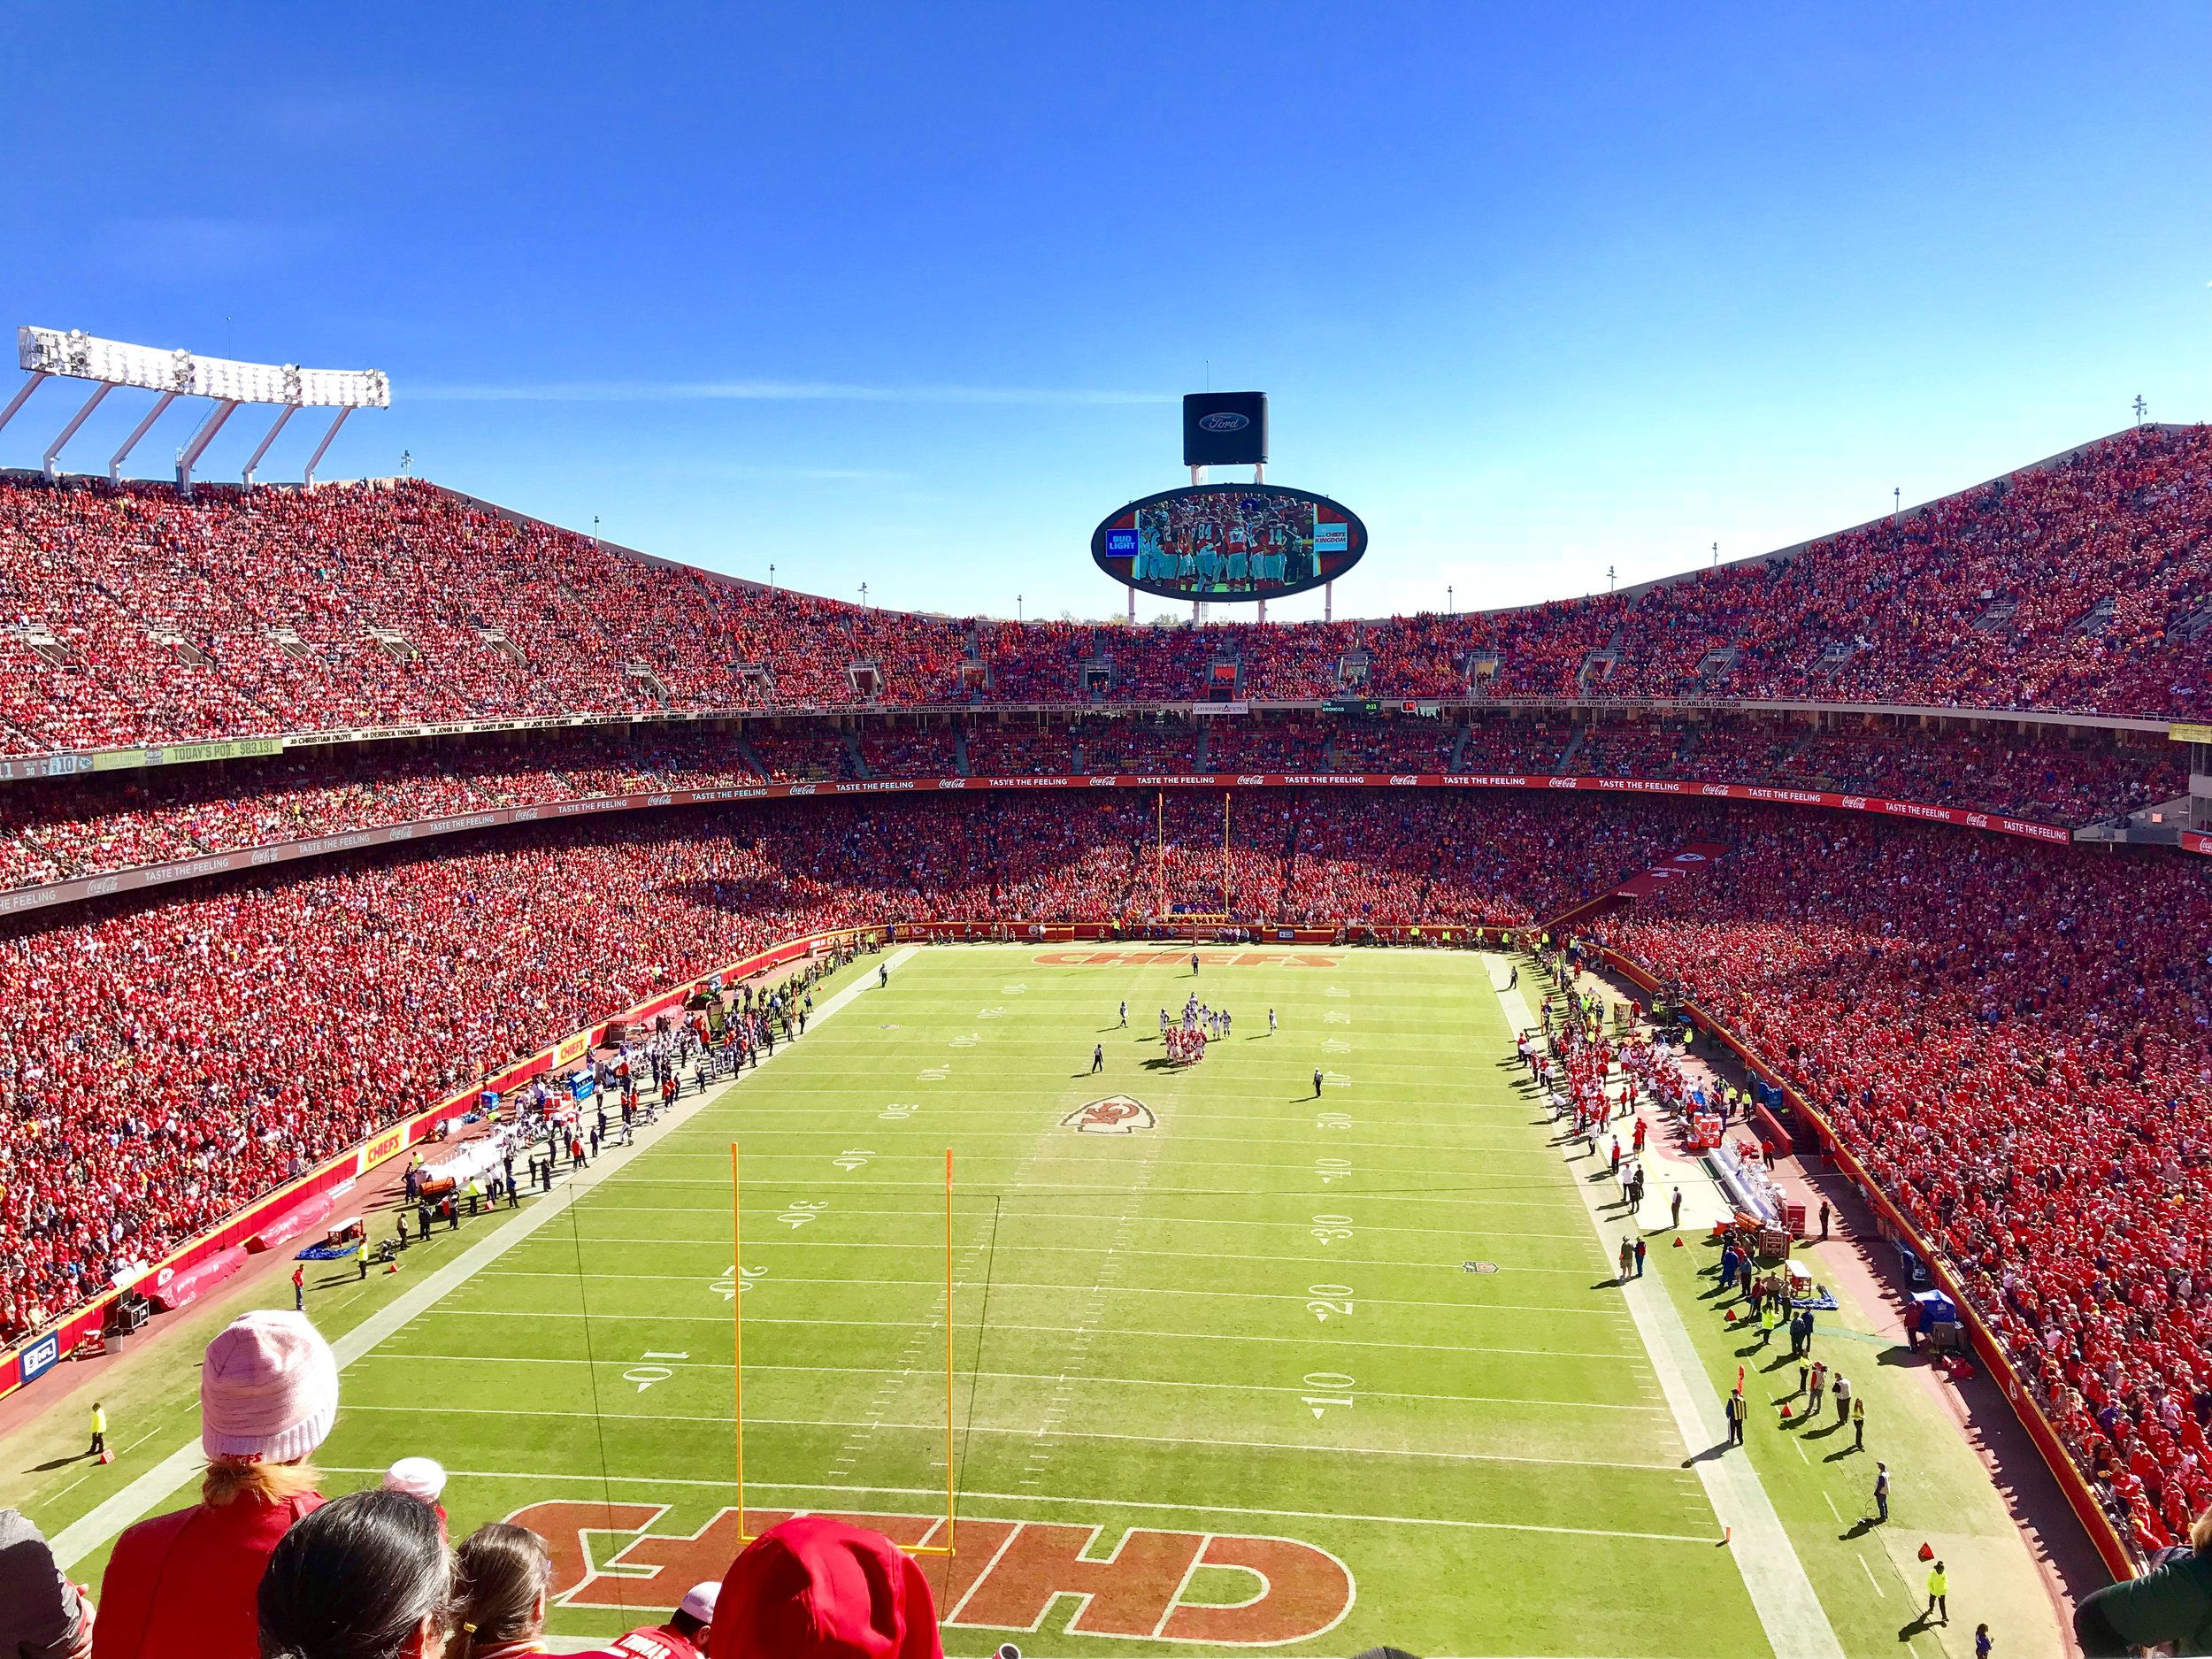 Kansas City Chiefs Tailgating And Stadium Food What To Know Before You Go Kansas City Chiefs Stadium Kansas City Chiefs Kansas City